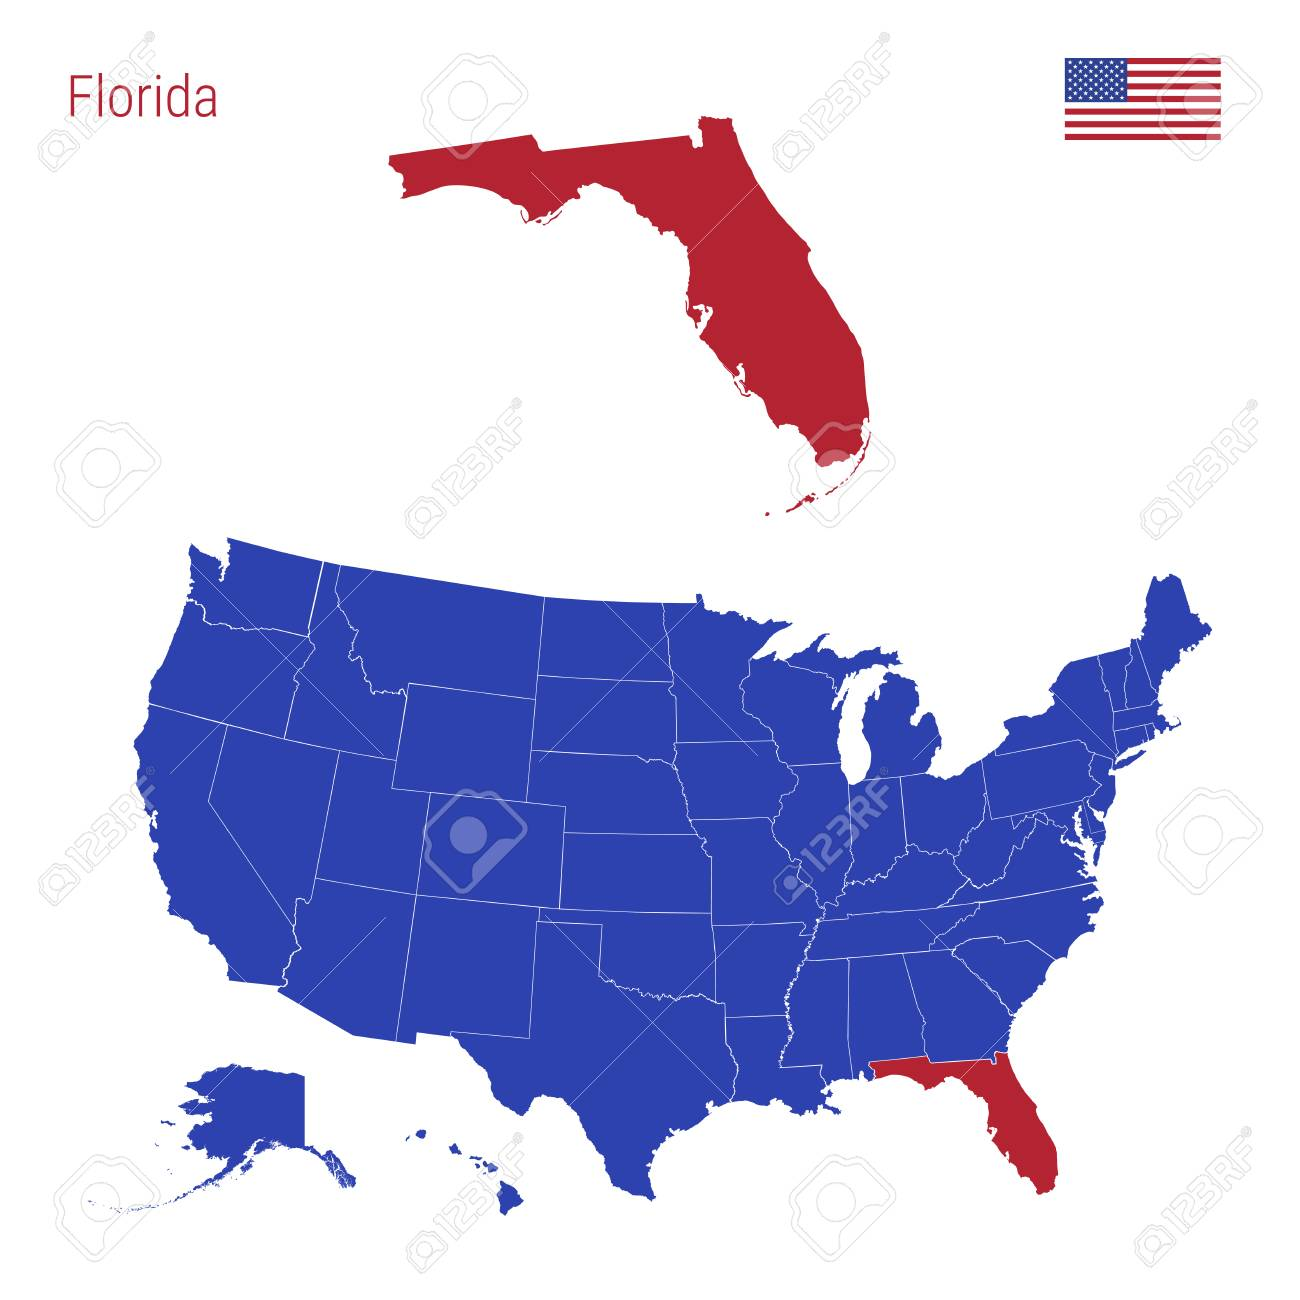 Get daily travel tips & deals! The State Of Florida Is Highlighted In Red Blue Vector Map Of The United States Divided Into Separate States Map Of The Usa Split Into Individual States Royalty Free Cliparts Vectors And